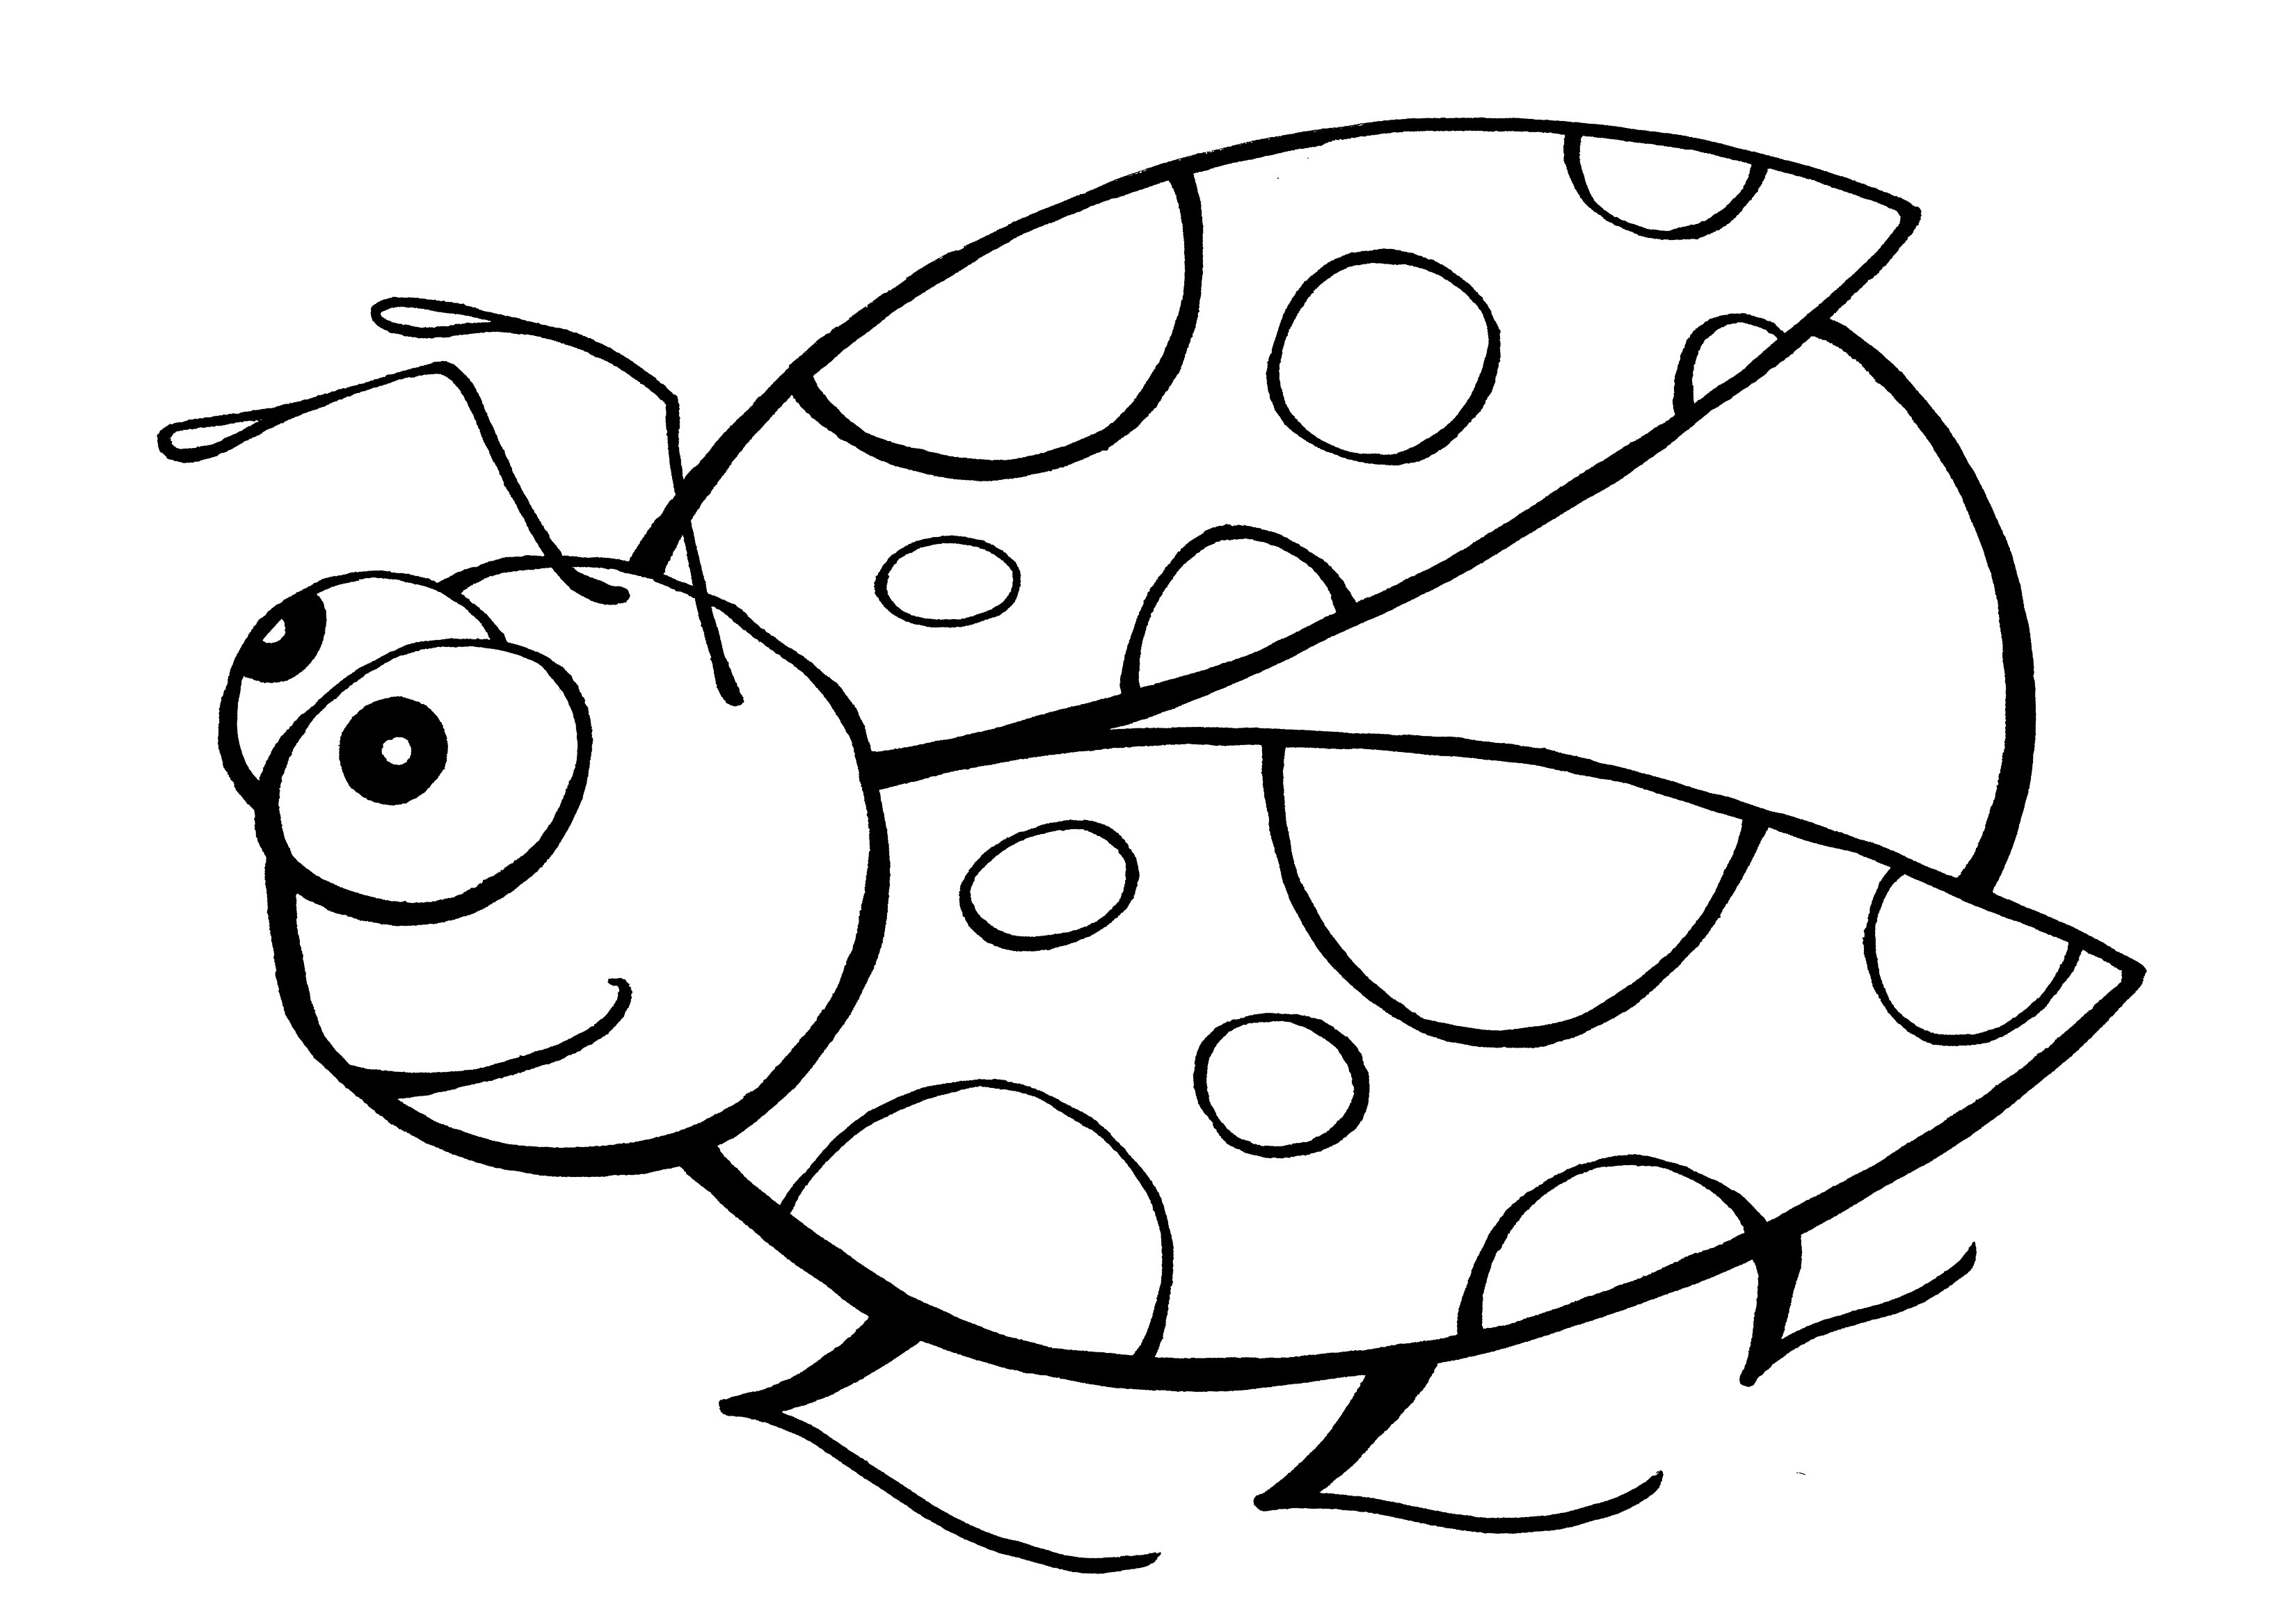 Lady bug coloring pages